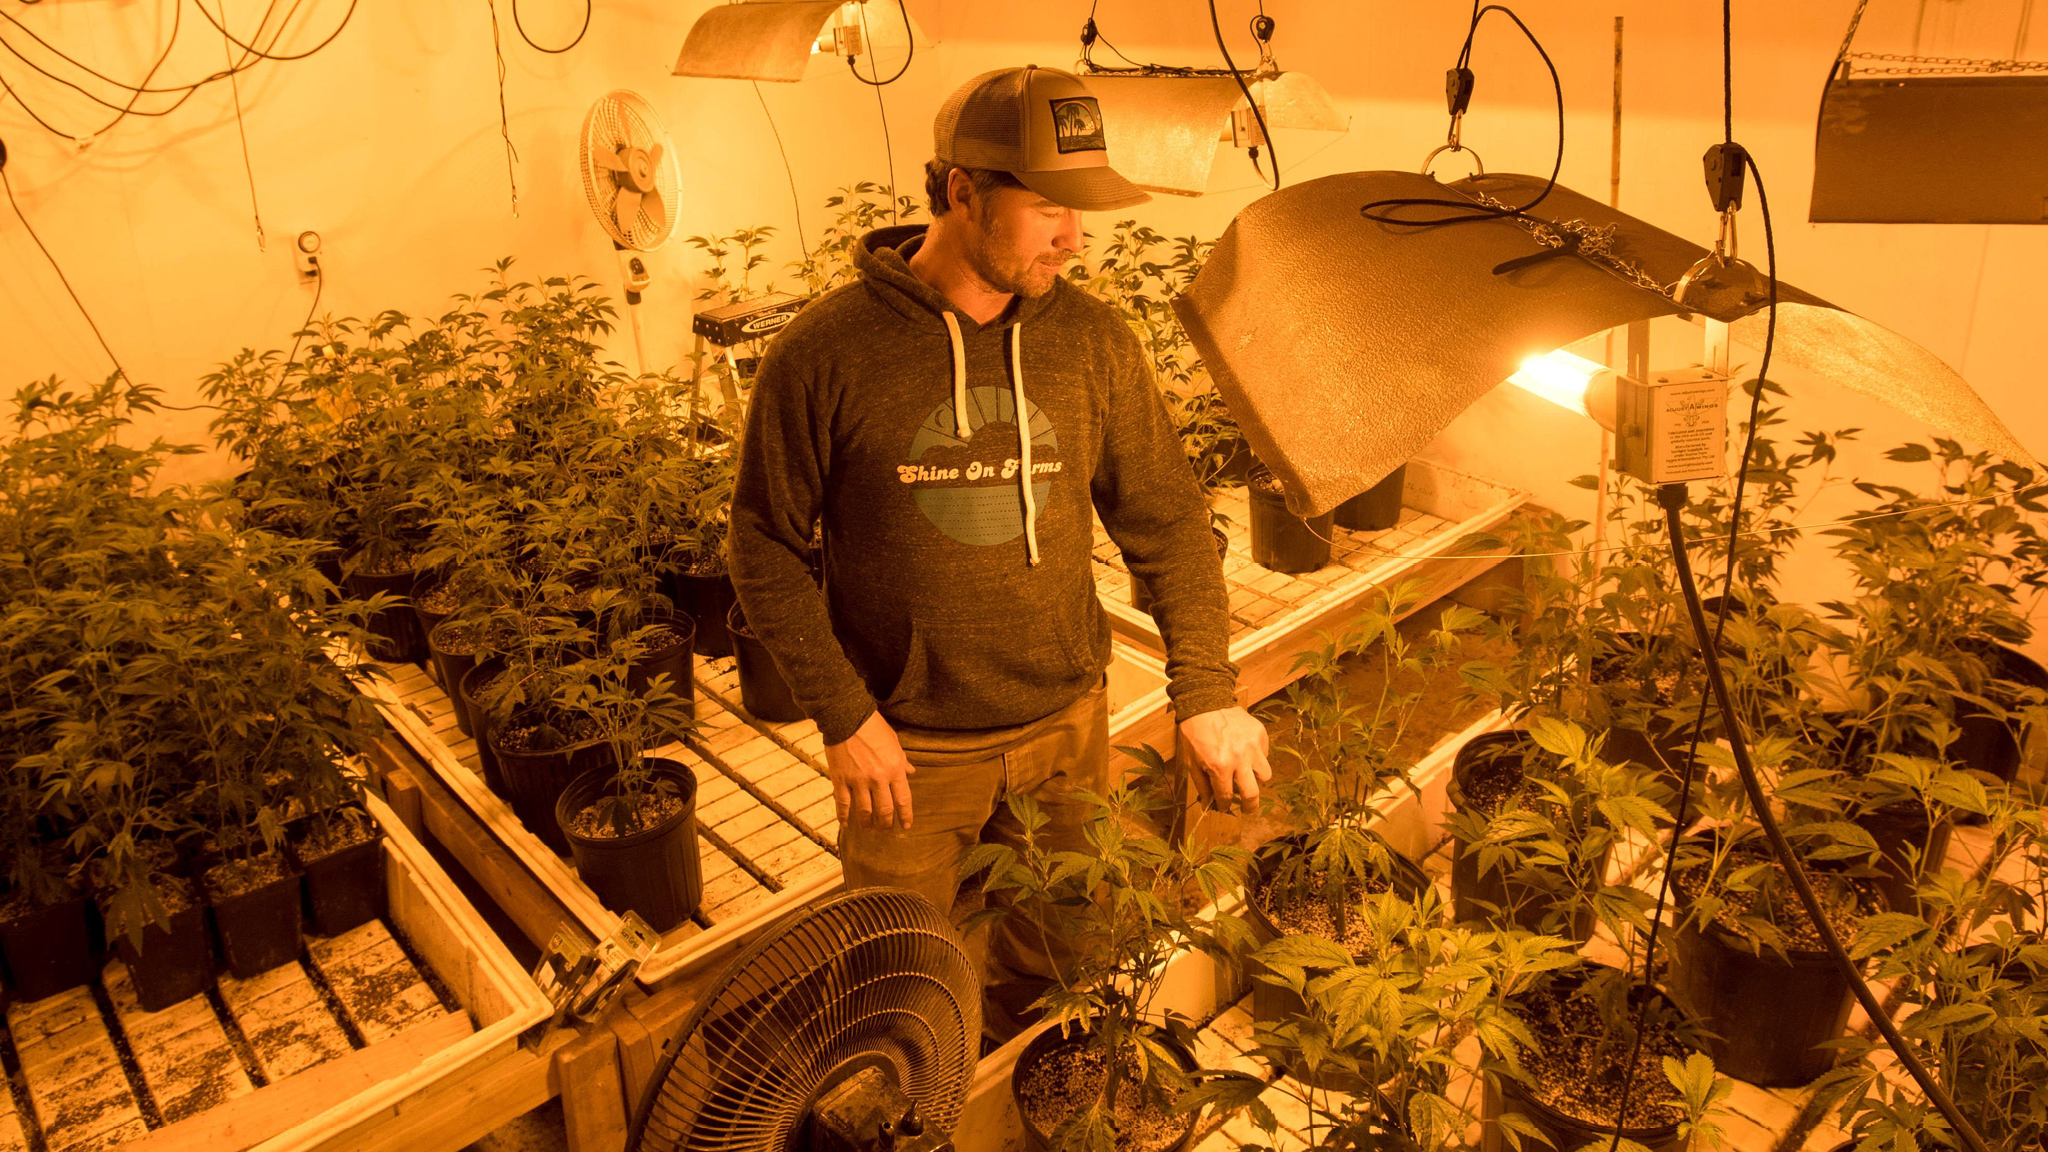 Californian growers and retailers brace for cannabis competition